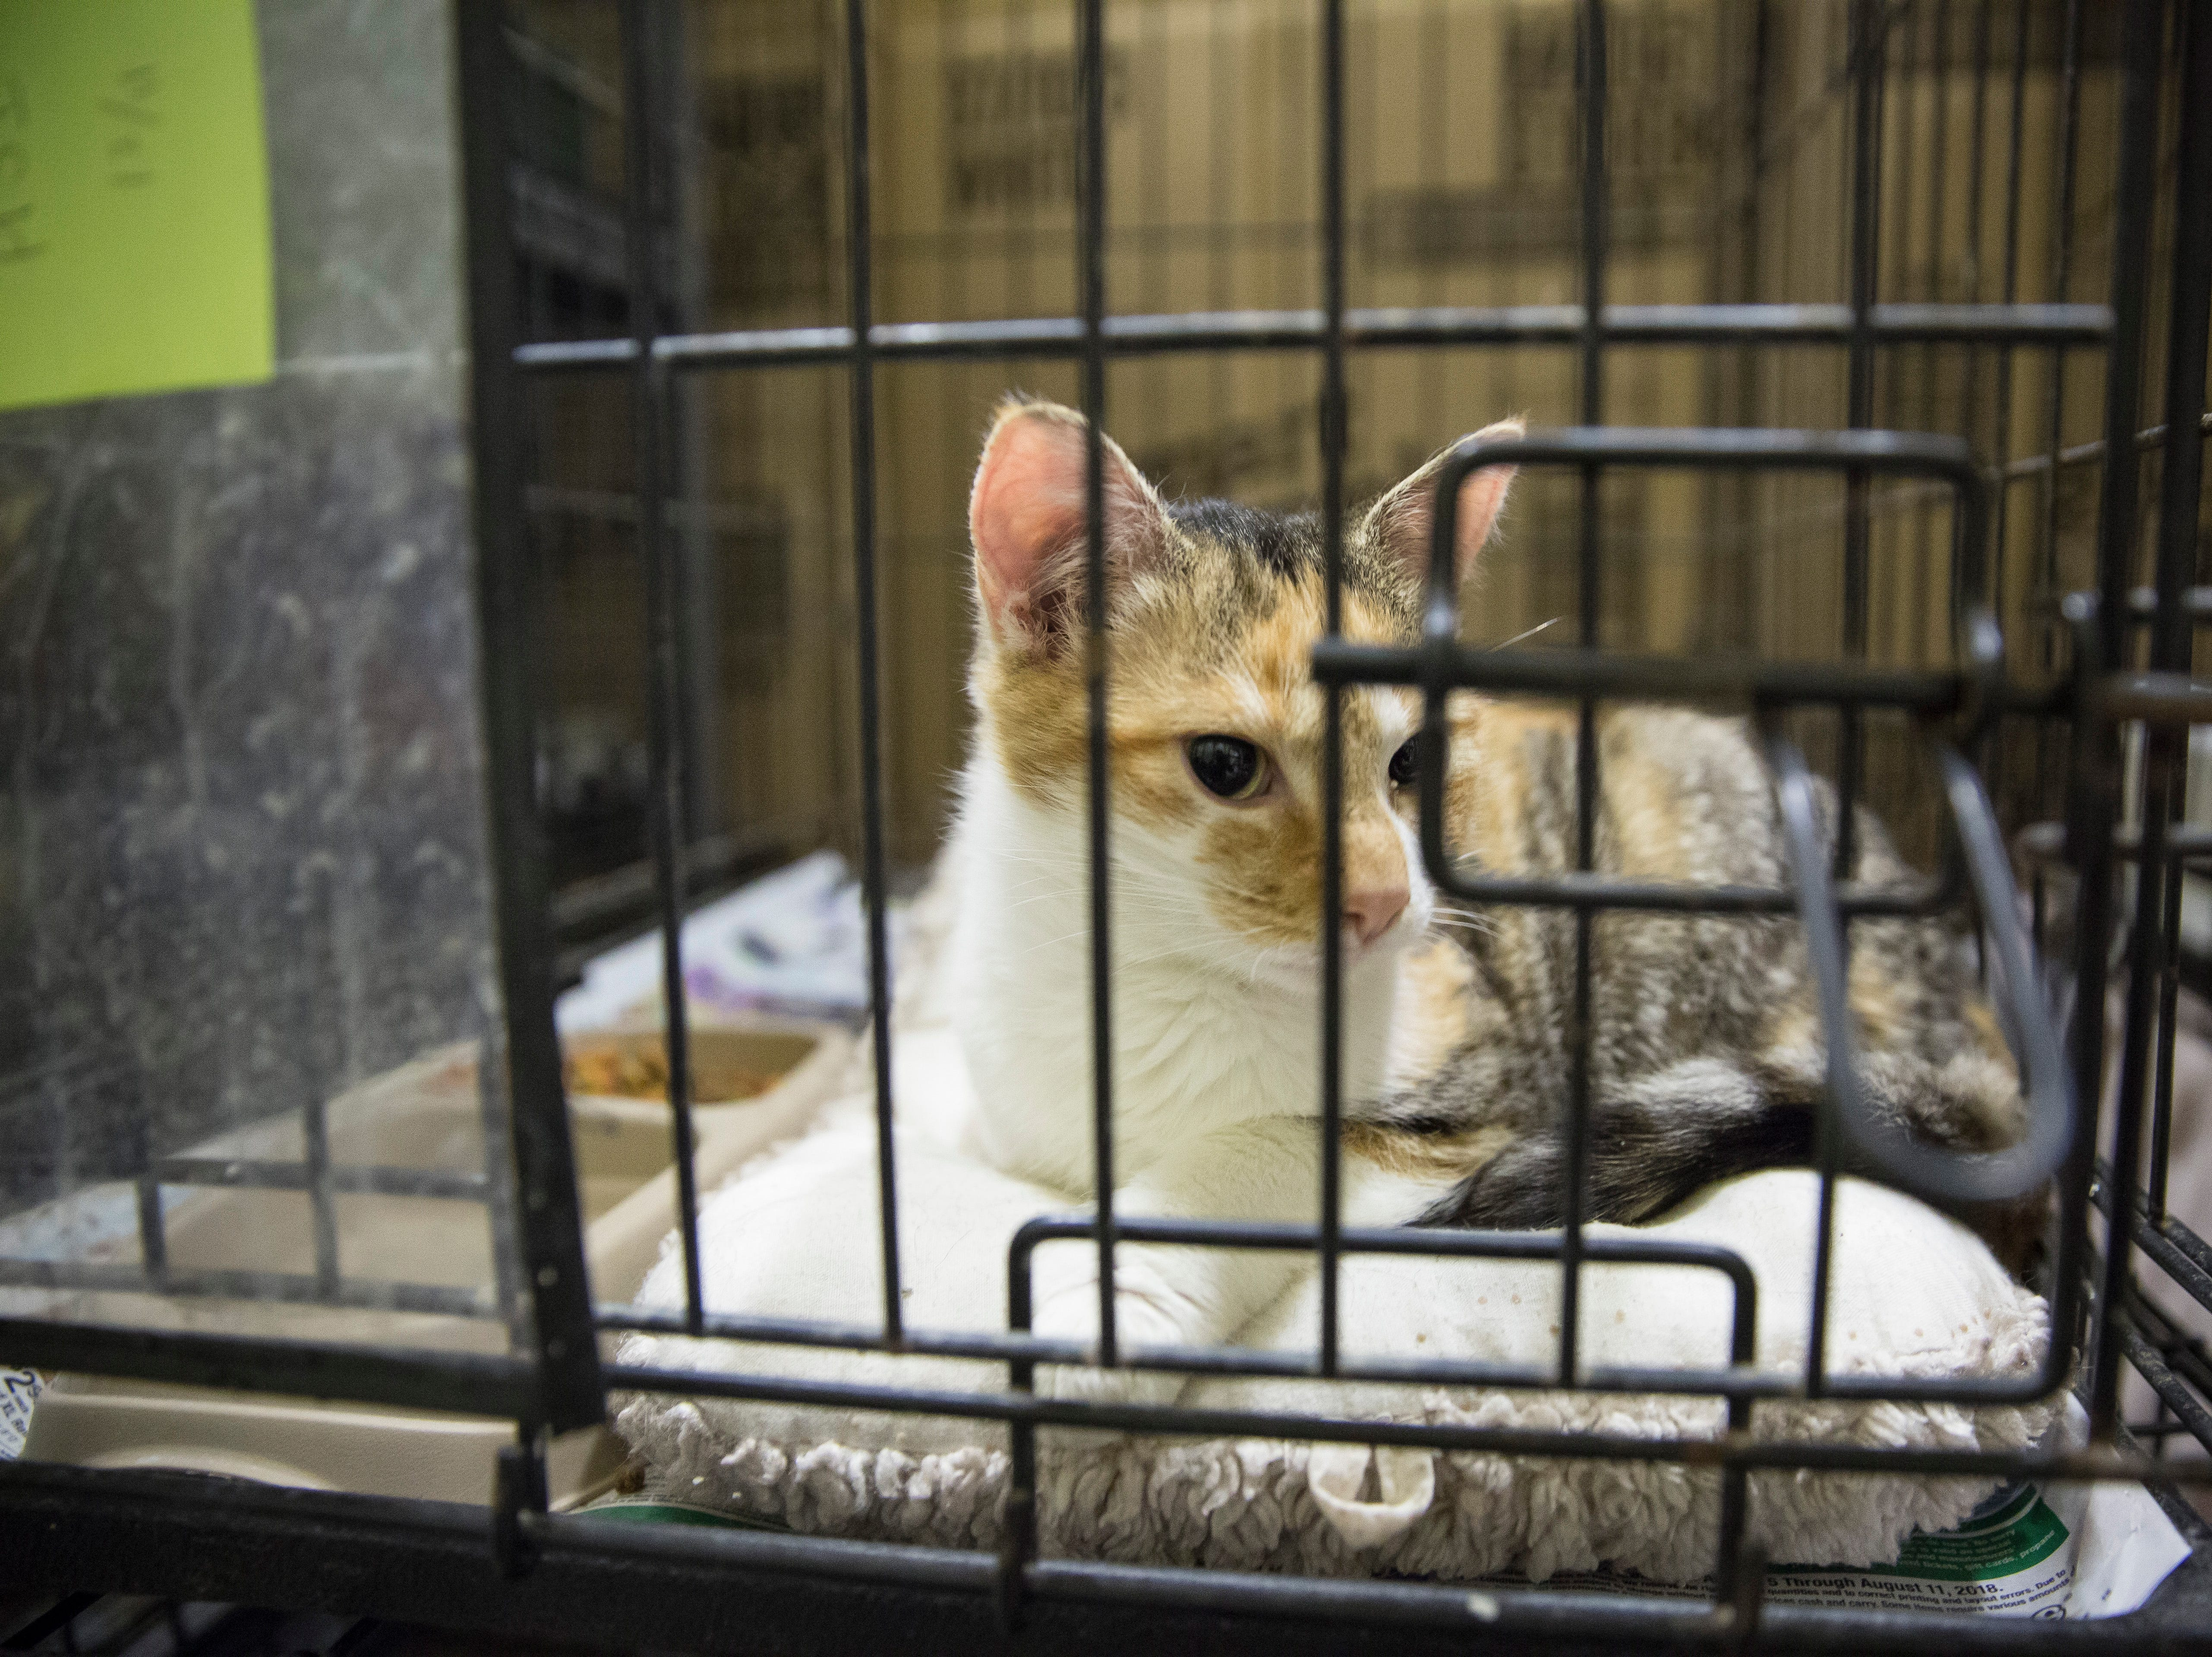 Several cats that were rescued in a U-haul at a Muncie hotel are still waiting to be cleared for the adoption floor on Tuesday. The shelter took in 43 cats just prior to their adoption event this weekend.